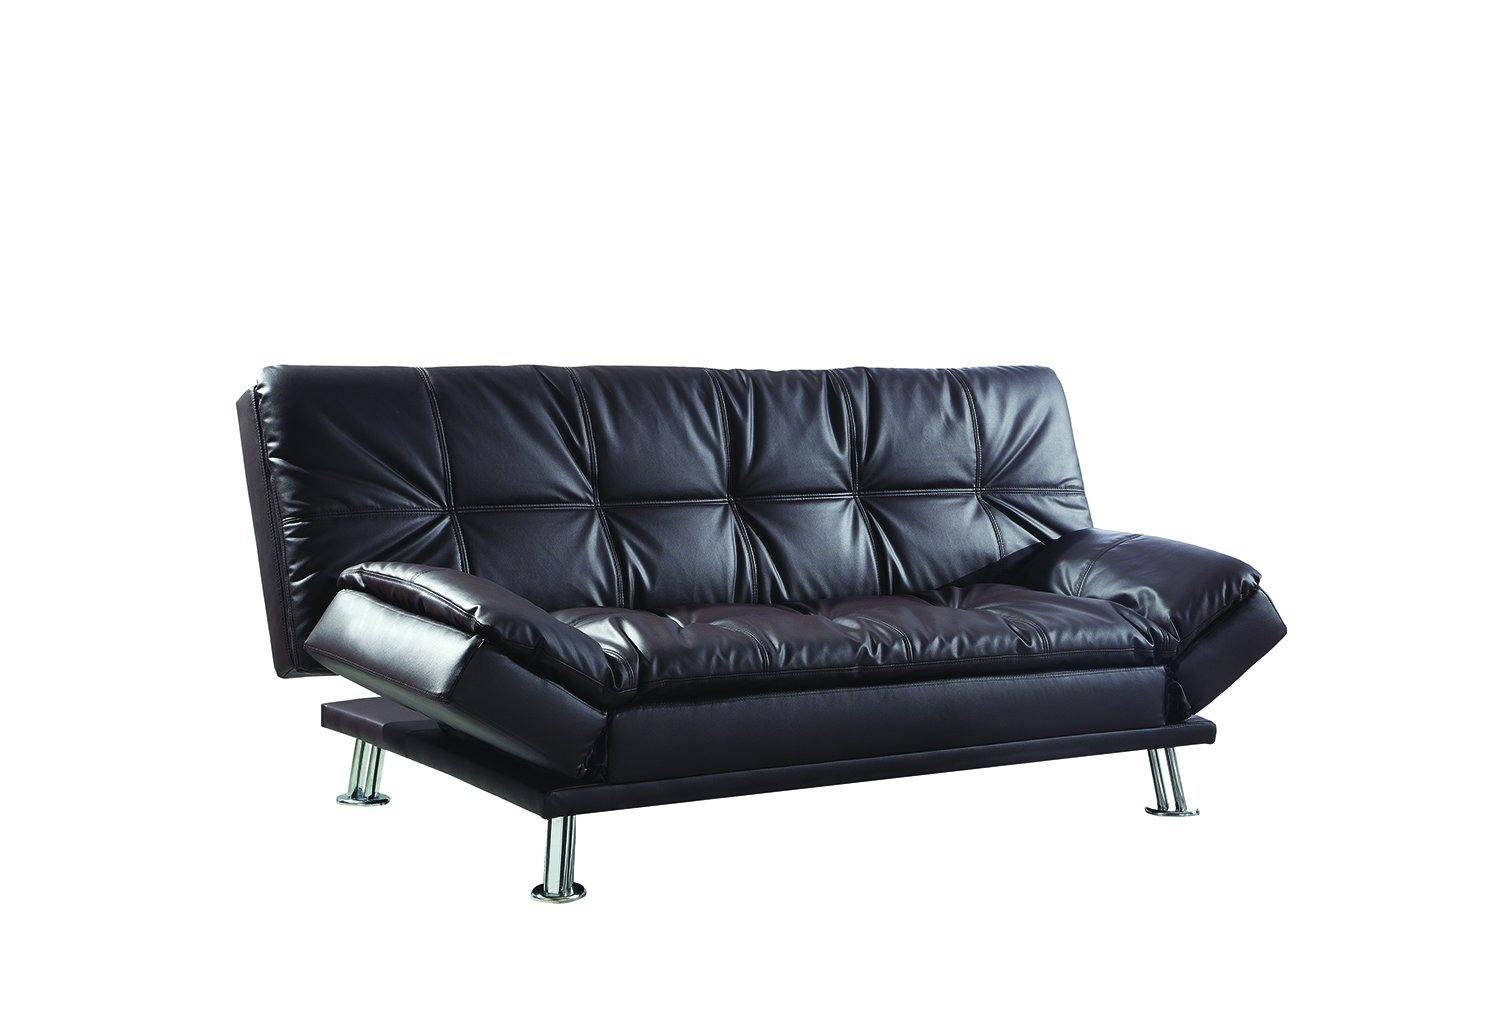 Dilleston 300321 sofa bed By coaster - sofafair.com